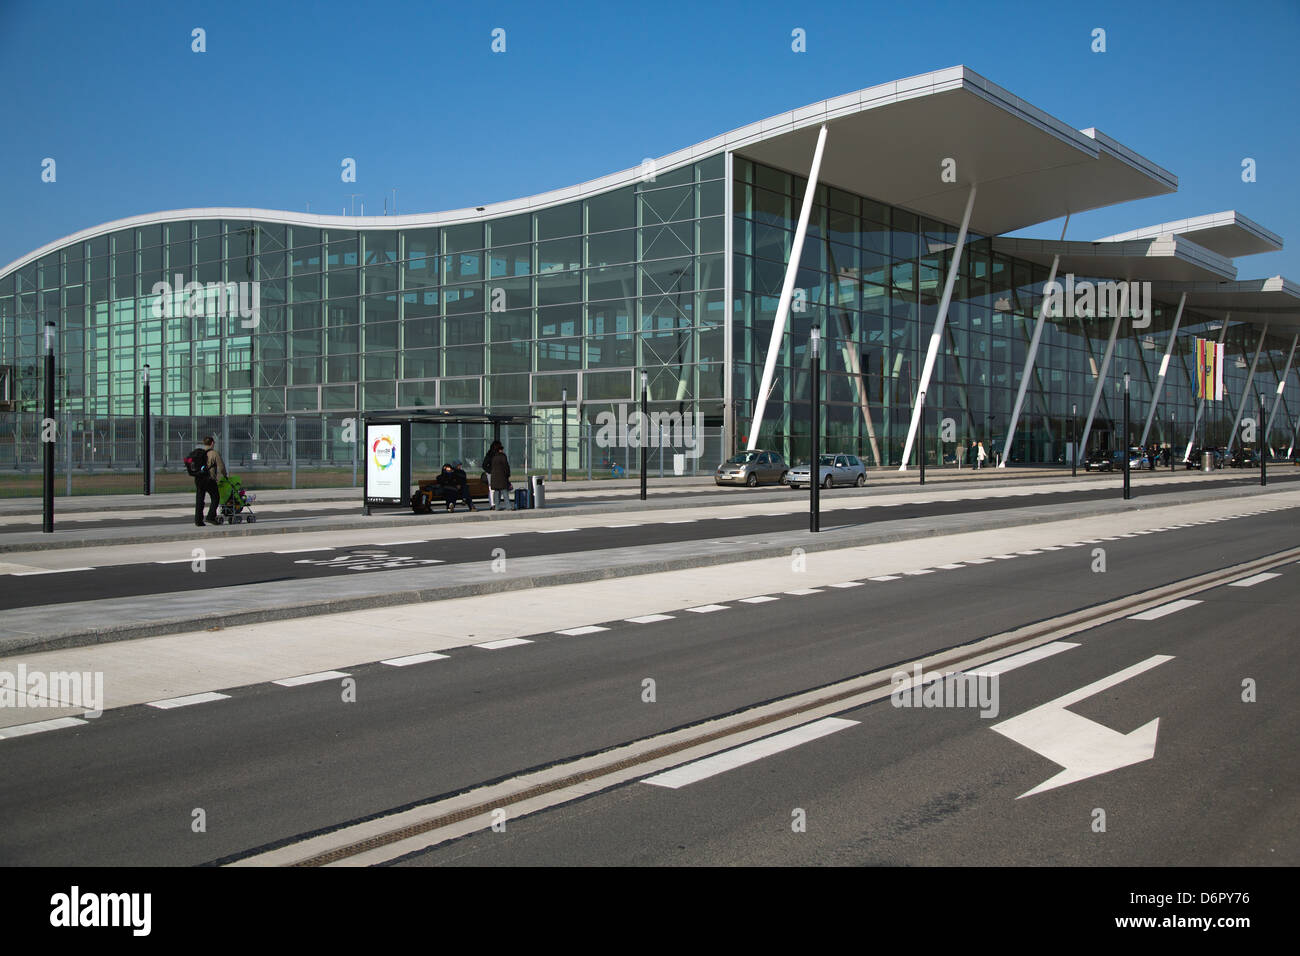 Airport Shuttle Terminal Stock Photos & Airport Shuttle ...